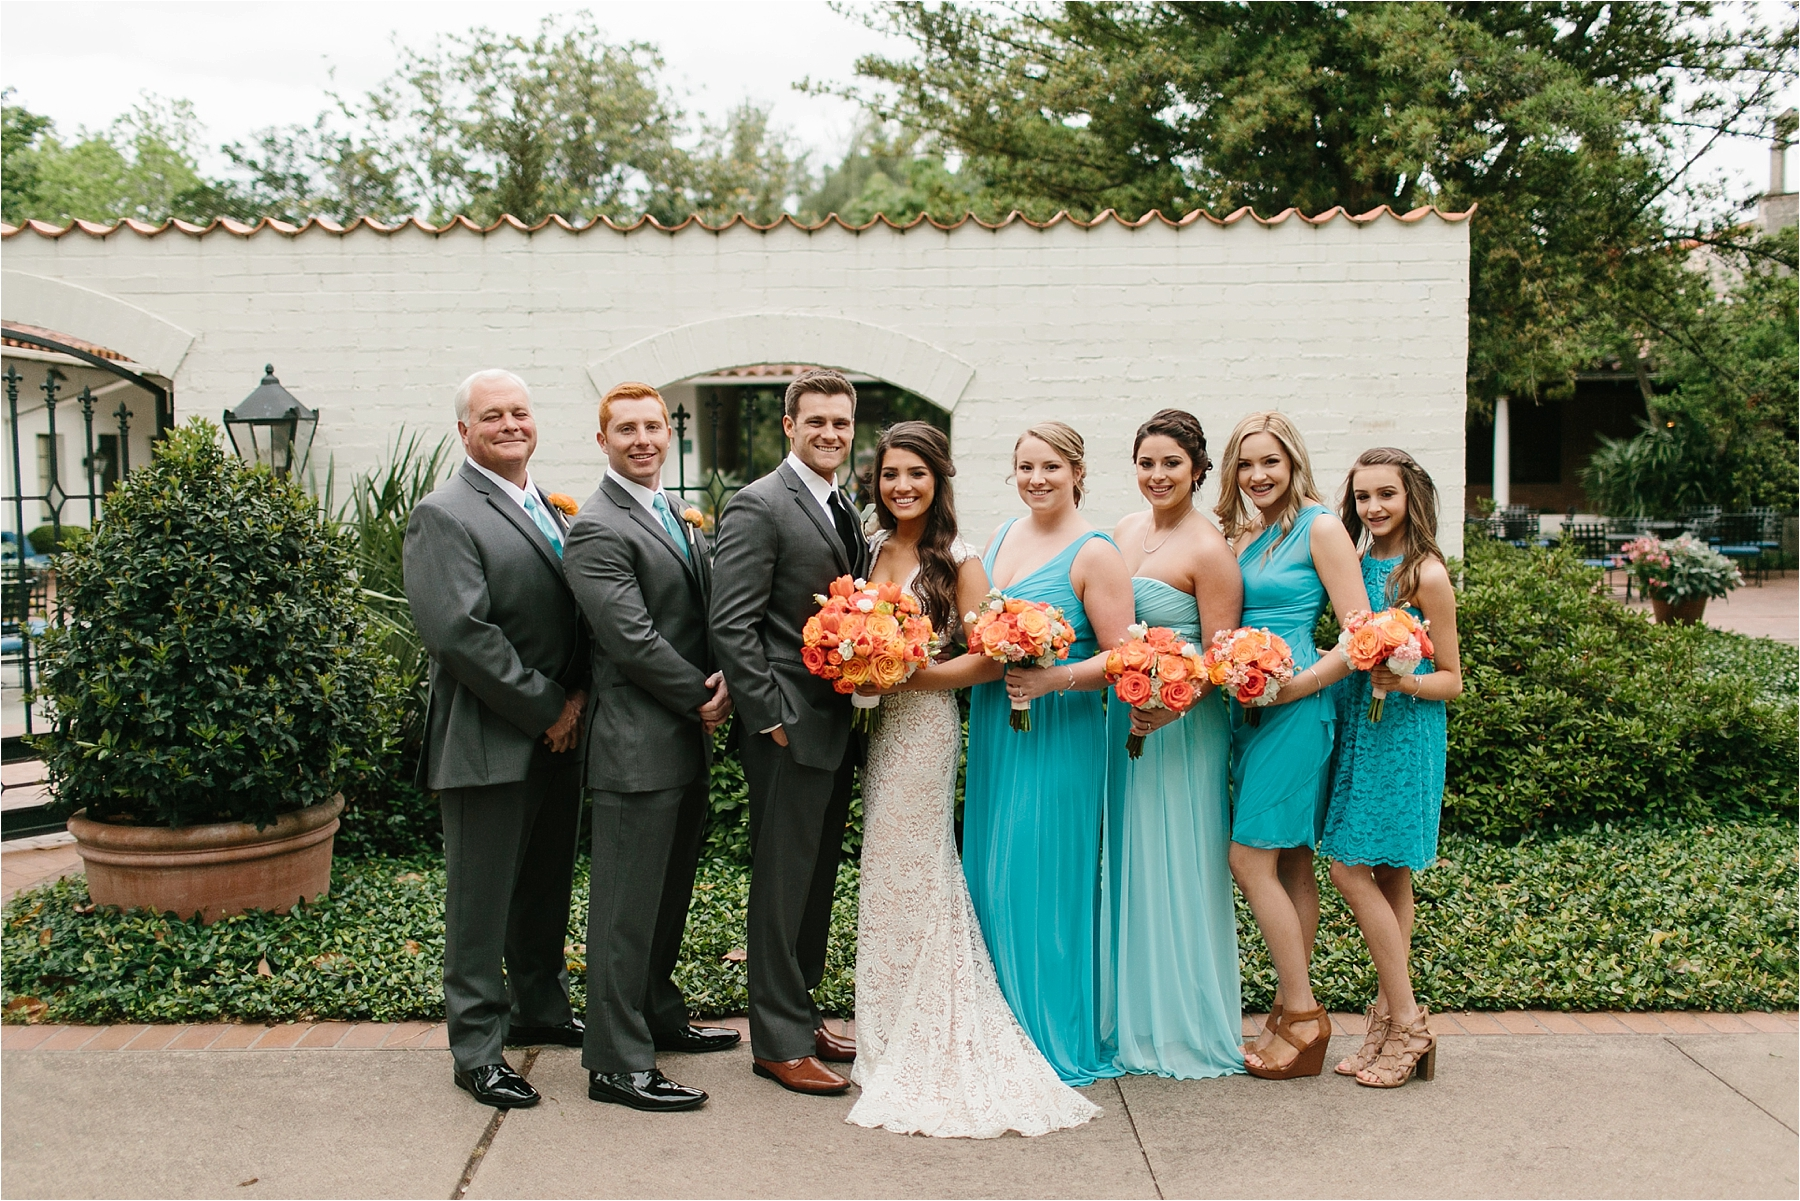 Devyn + Caden __ a Dallas Arboretum Garden Style Wedding by North Texas Wedding Photographer Rachel Meagan Photography __ 056